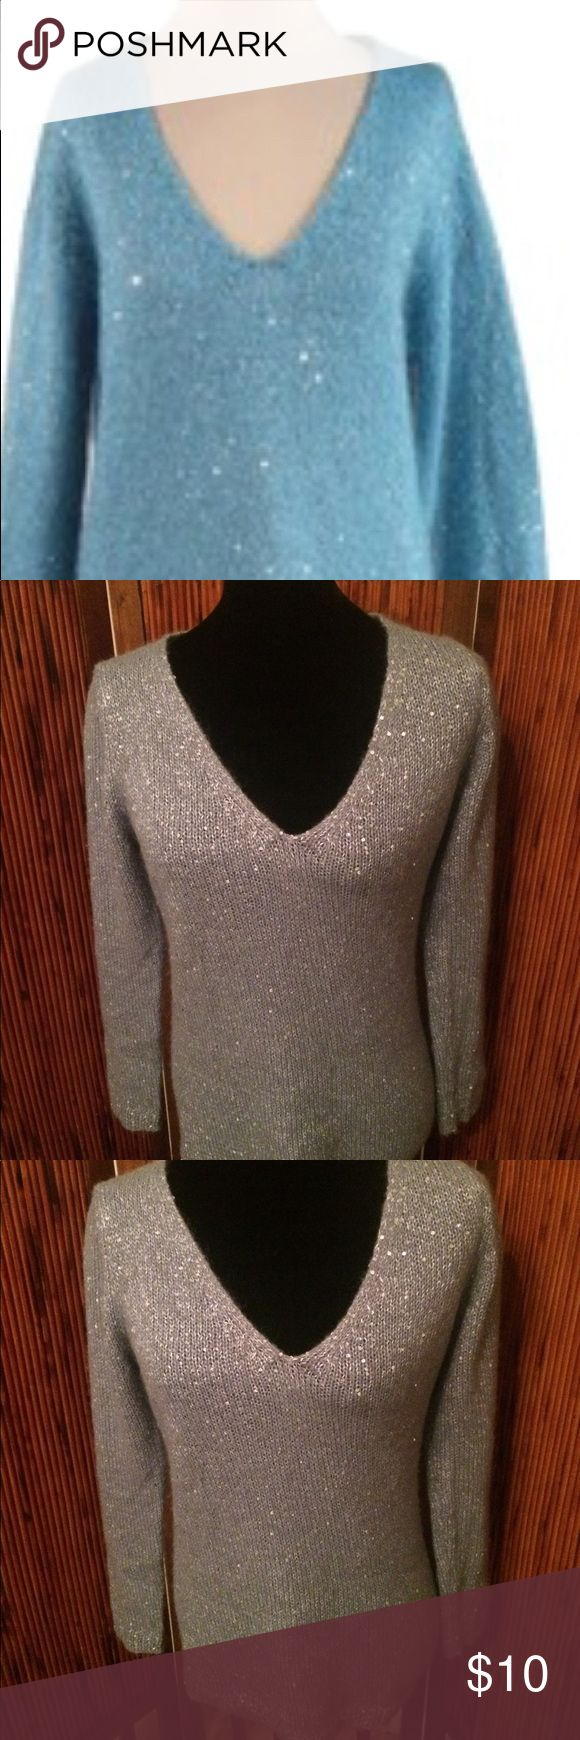 Joe Fresh Light Blue Sequined V-Neck Sweater SP Joe Fresh Light Blue Sequined V-Neck Sweater Size Small Petite. In good used condition. No stains, rips, or holes. There are 2 fabric pulls on the front of the sweater and they are shown up close in the pics. The materials tag has been removed. Comes from a smoke and pet free home. Thanks for looking 😊 Joe Fresh Sweaters V-Necks